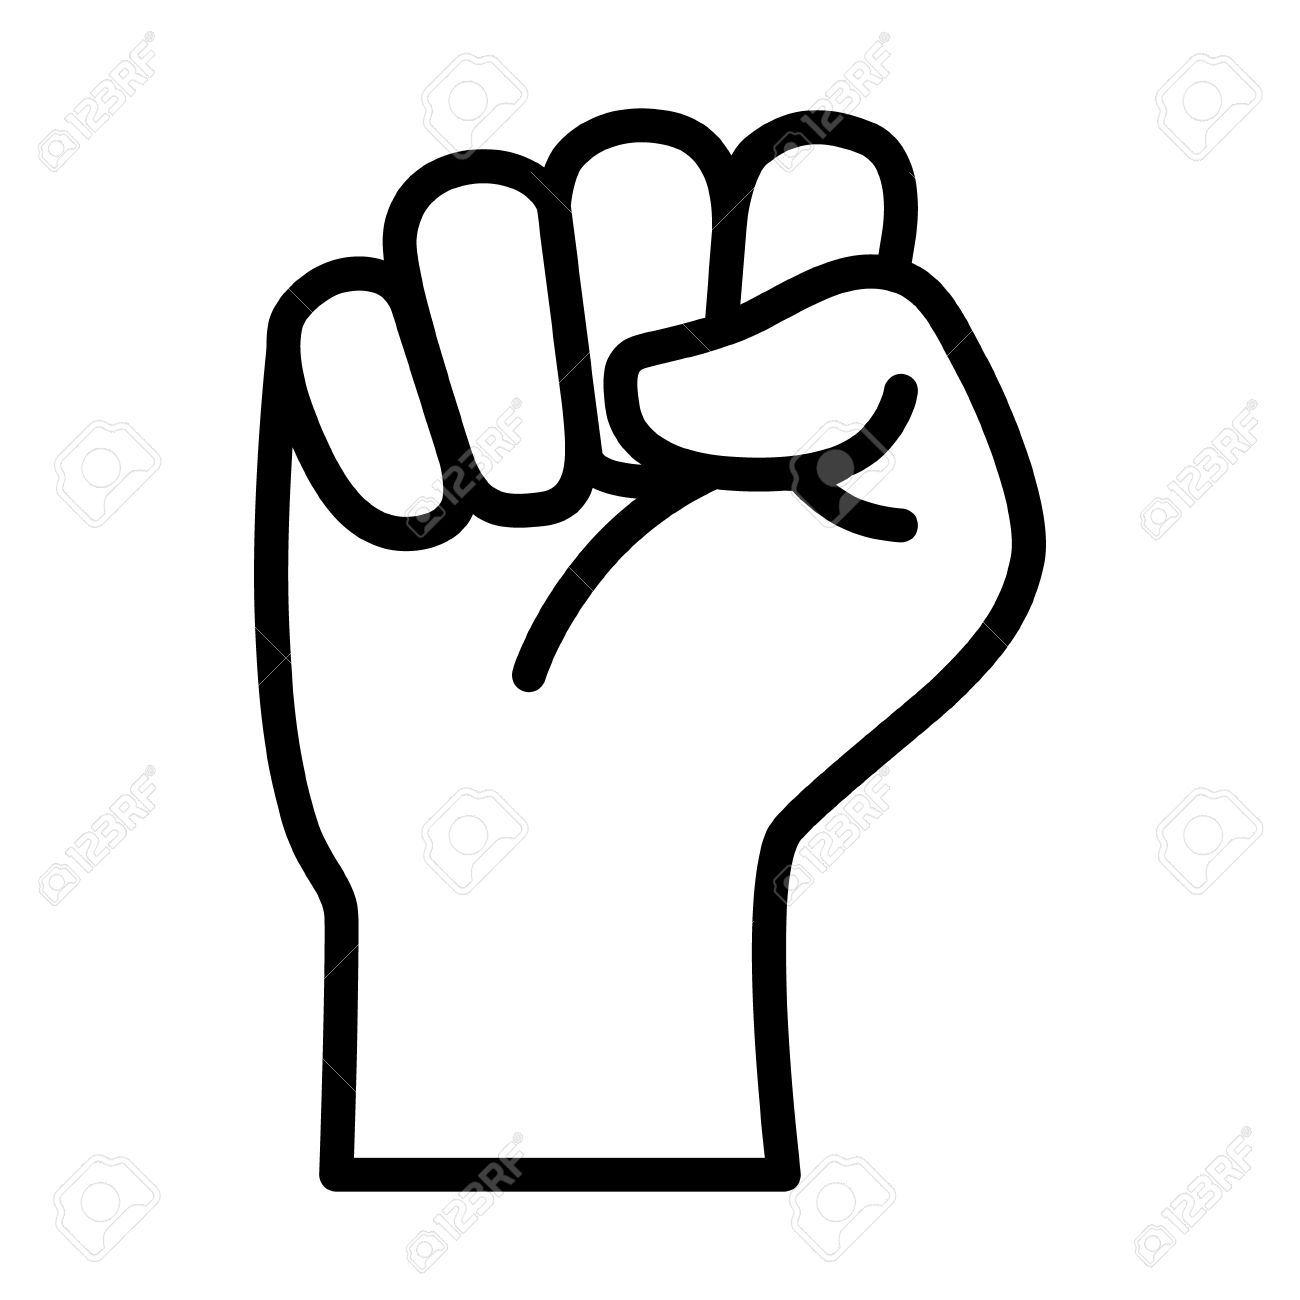 raised fist symbol of victory strength power and solidarity rh 123rf com fast clip art fist clip art free